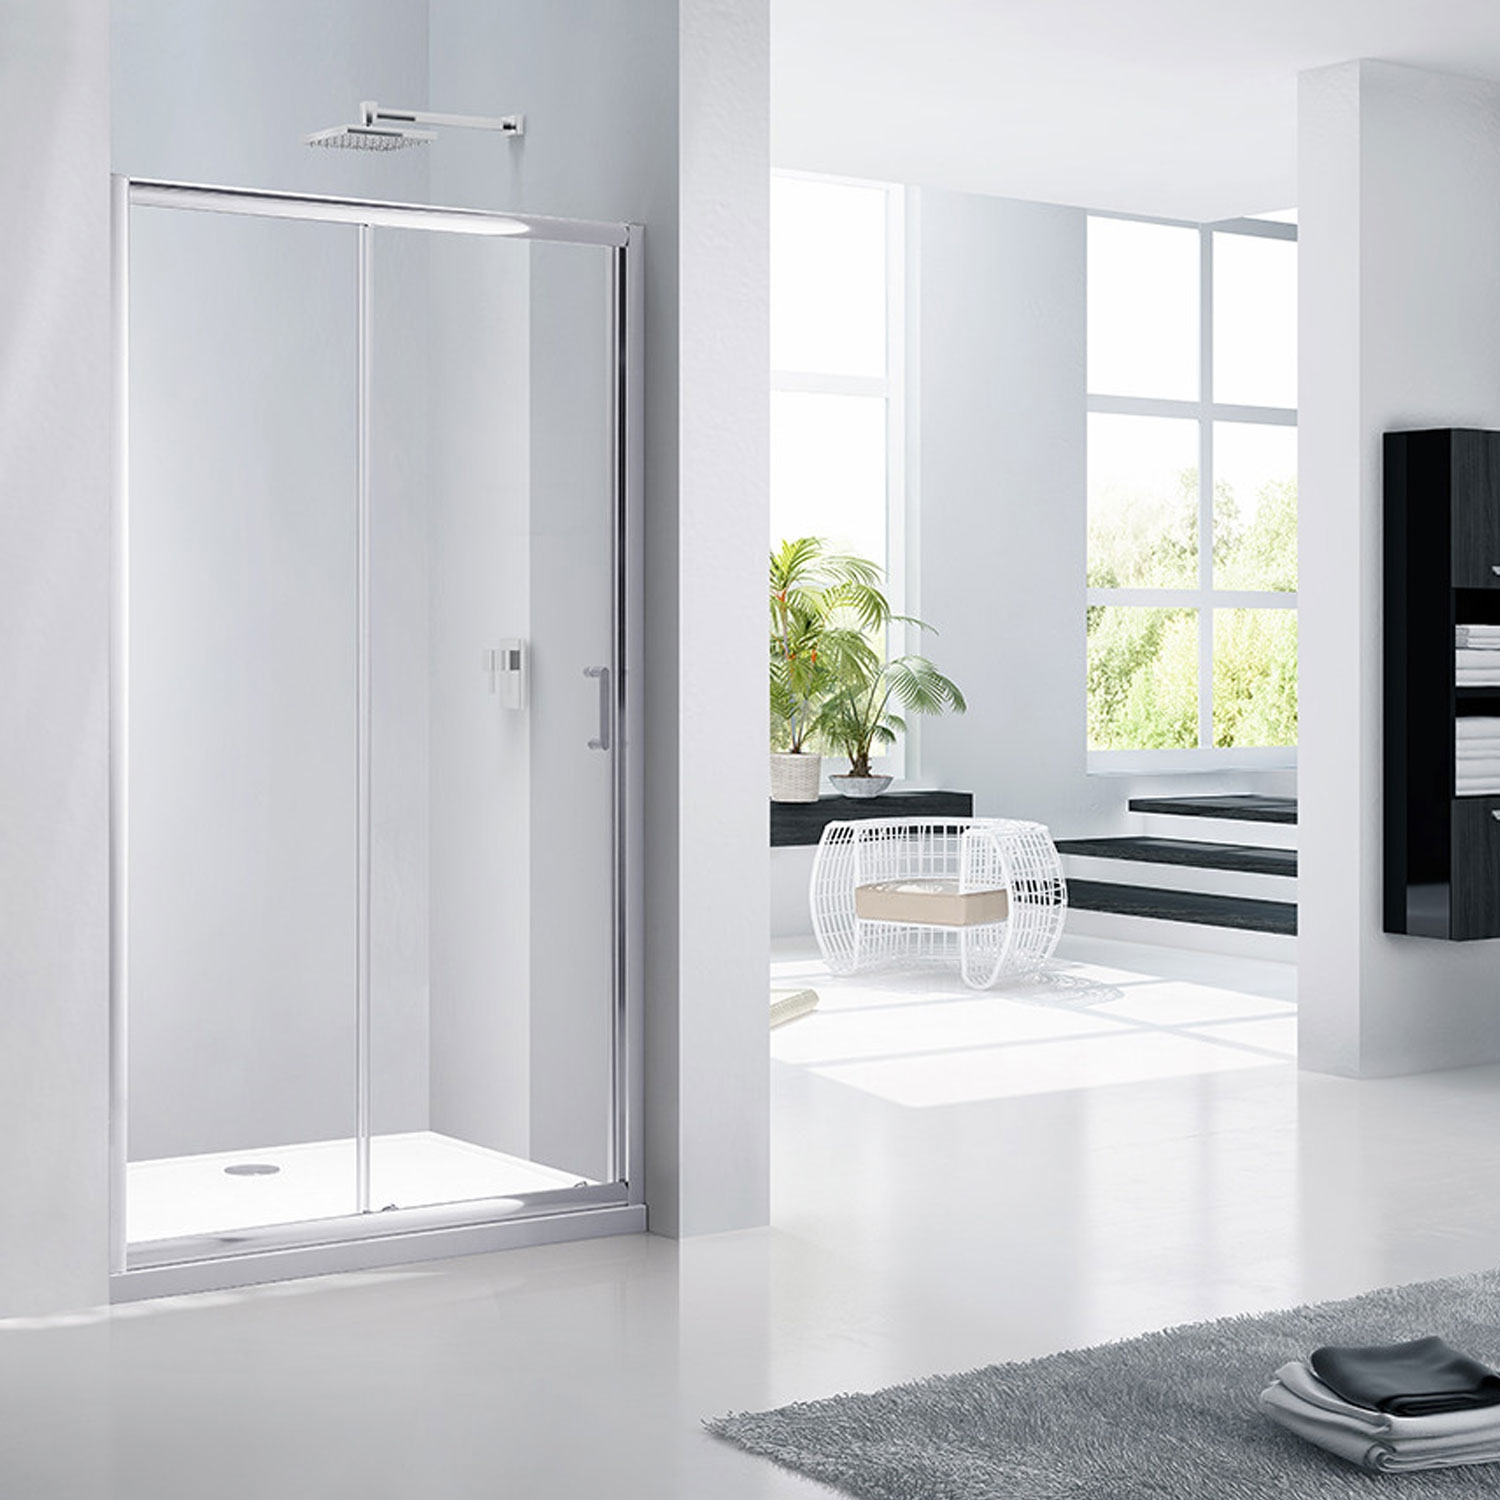 Verona Aquaglass Purity Sliding Shower Door 1100mm Wide - 6mm Glass-0